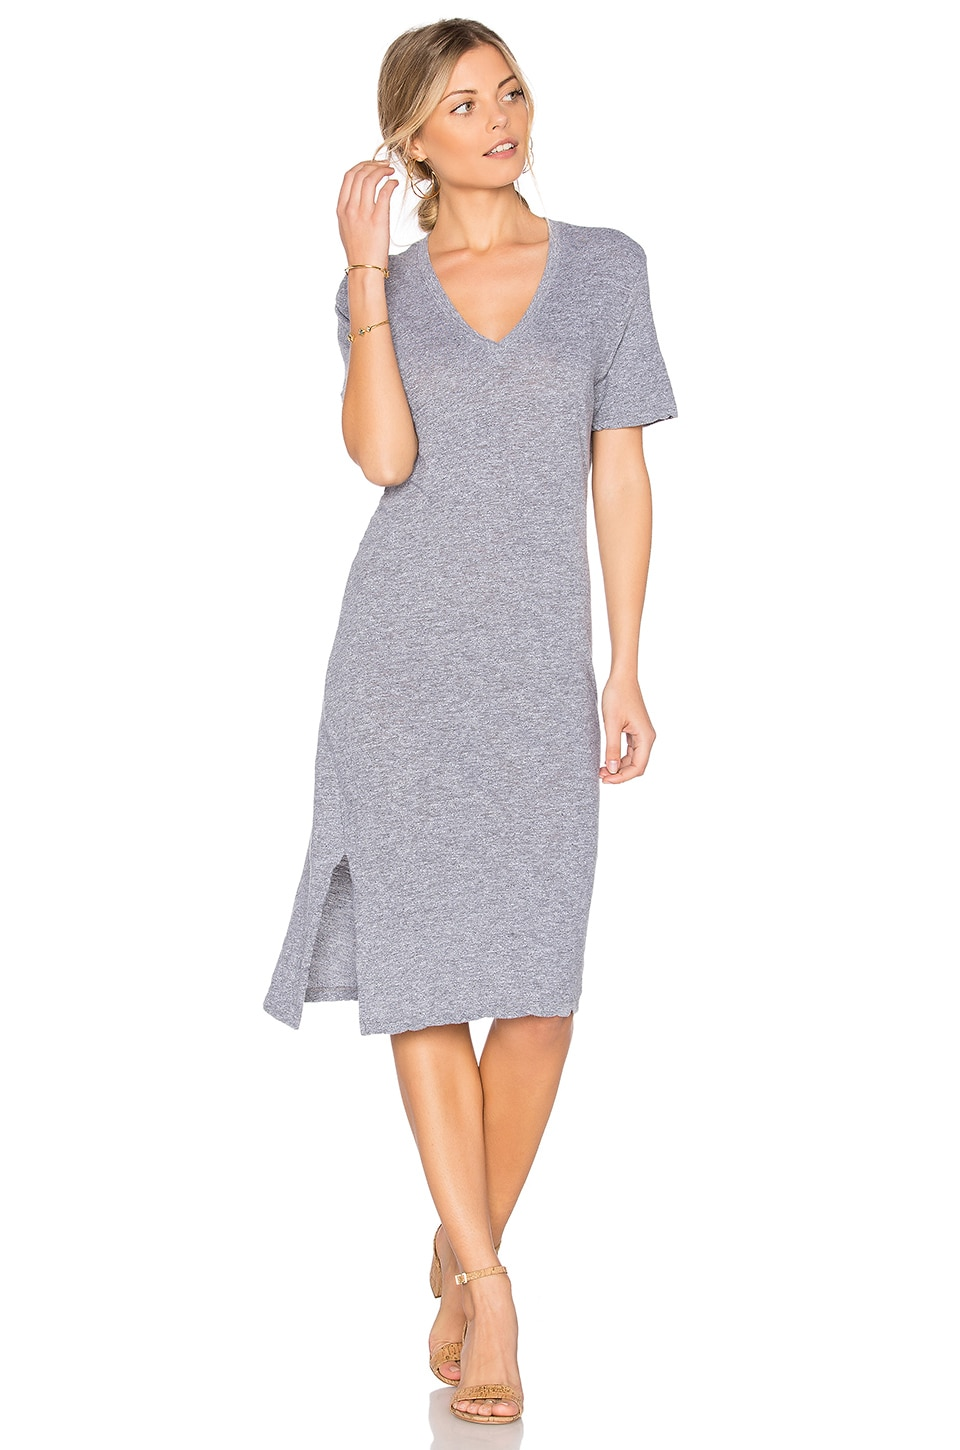 MONROW Oversized Knot Tee Dress in Granite